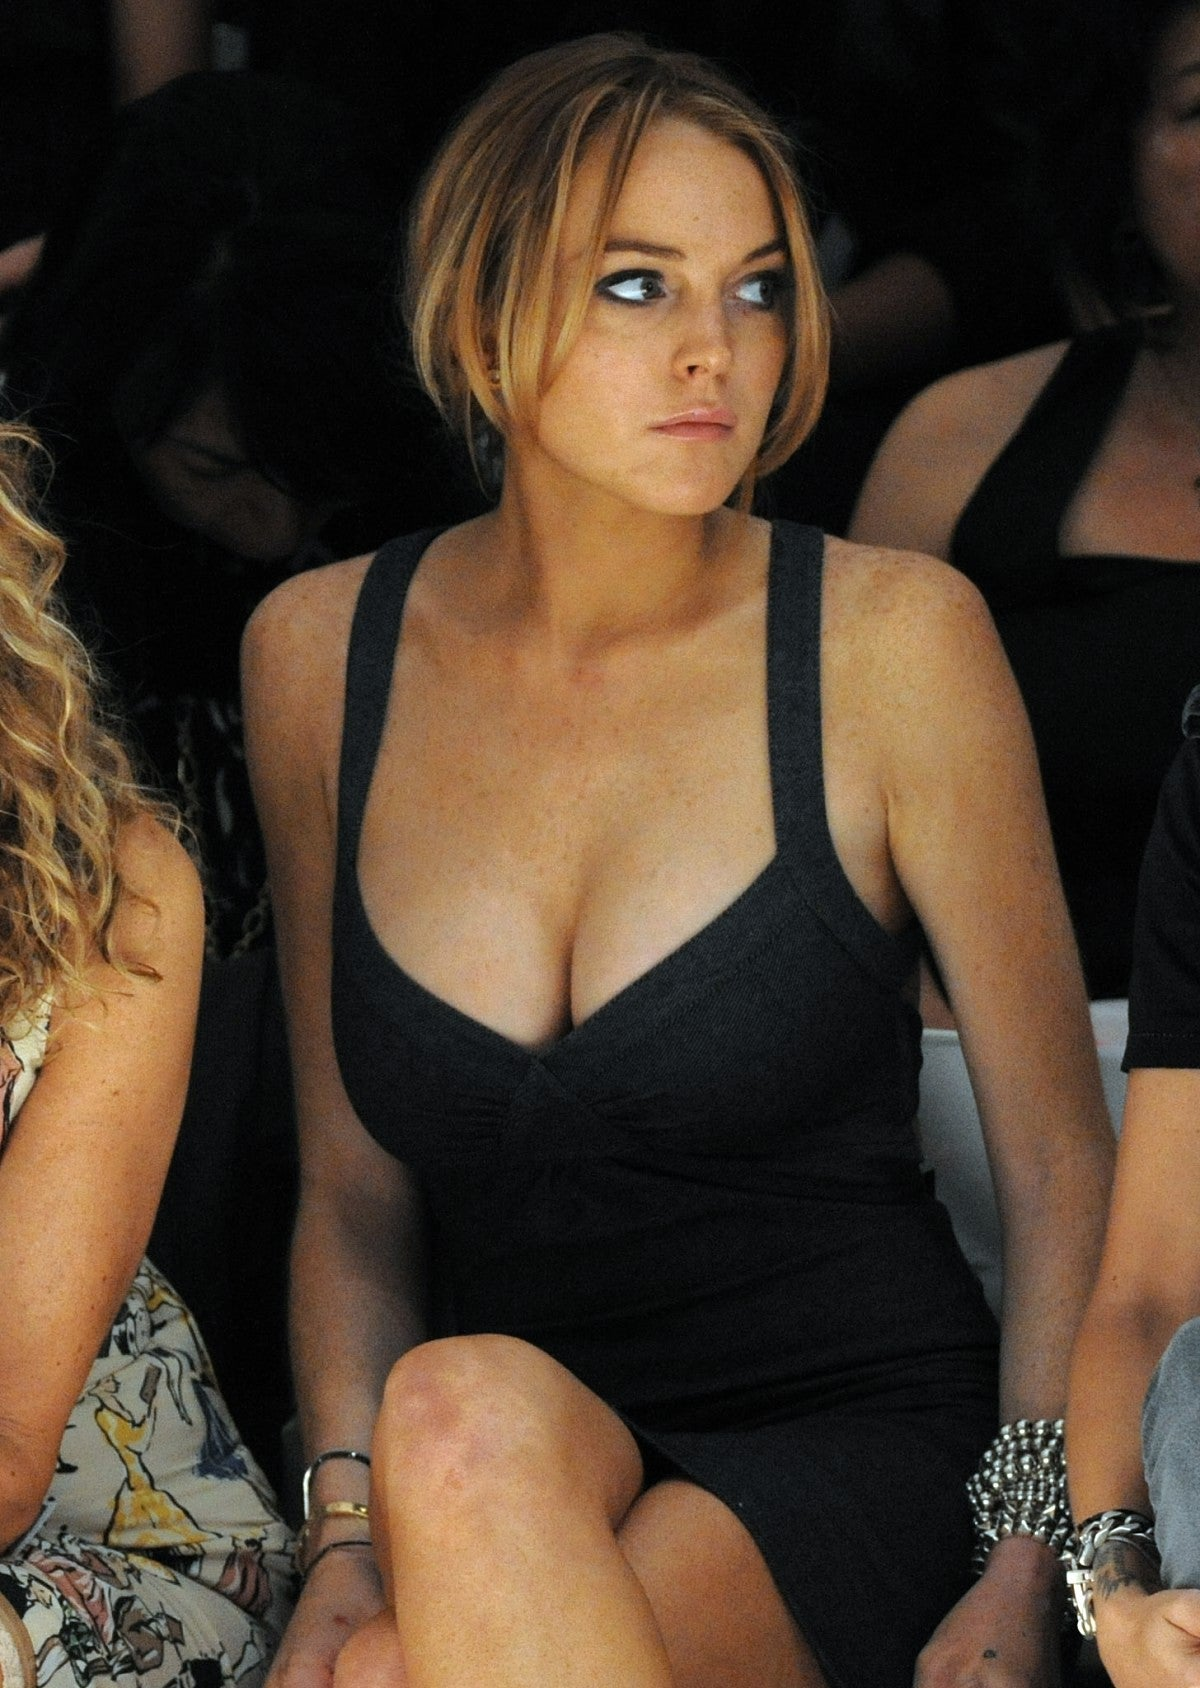 The cleavage thread! - Page 3 39199